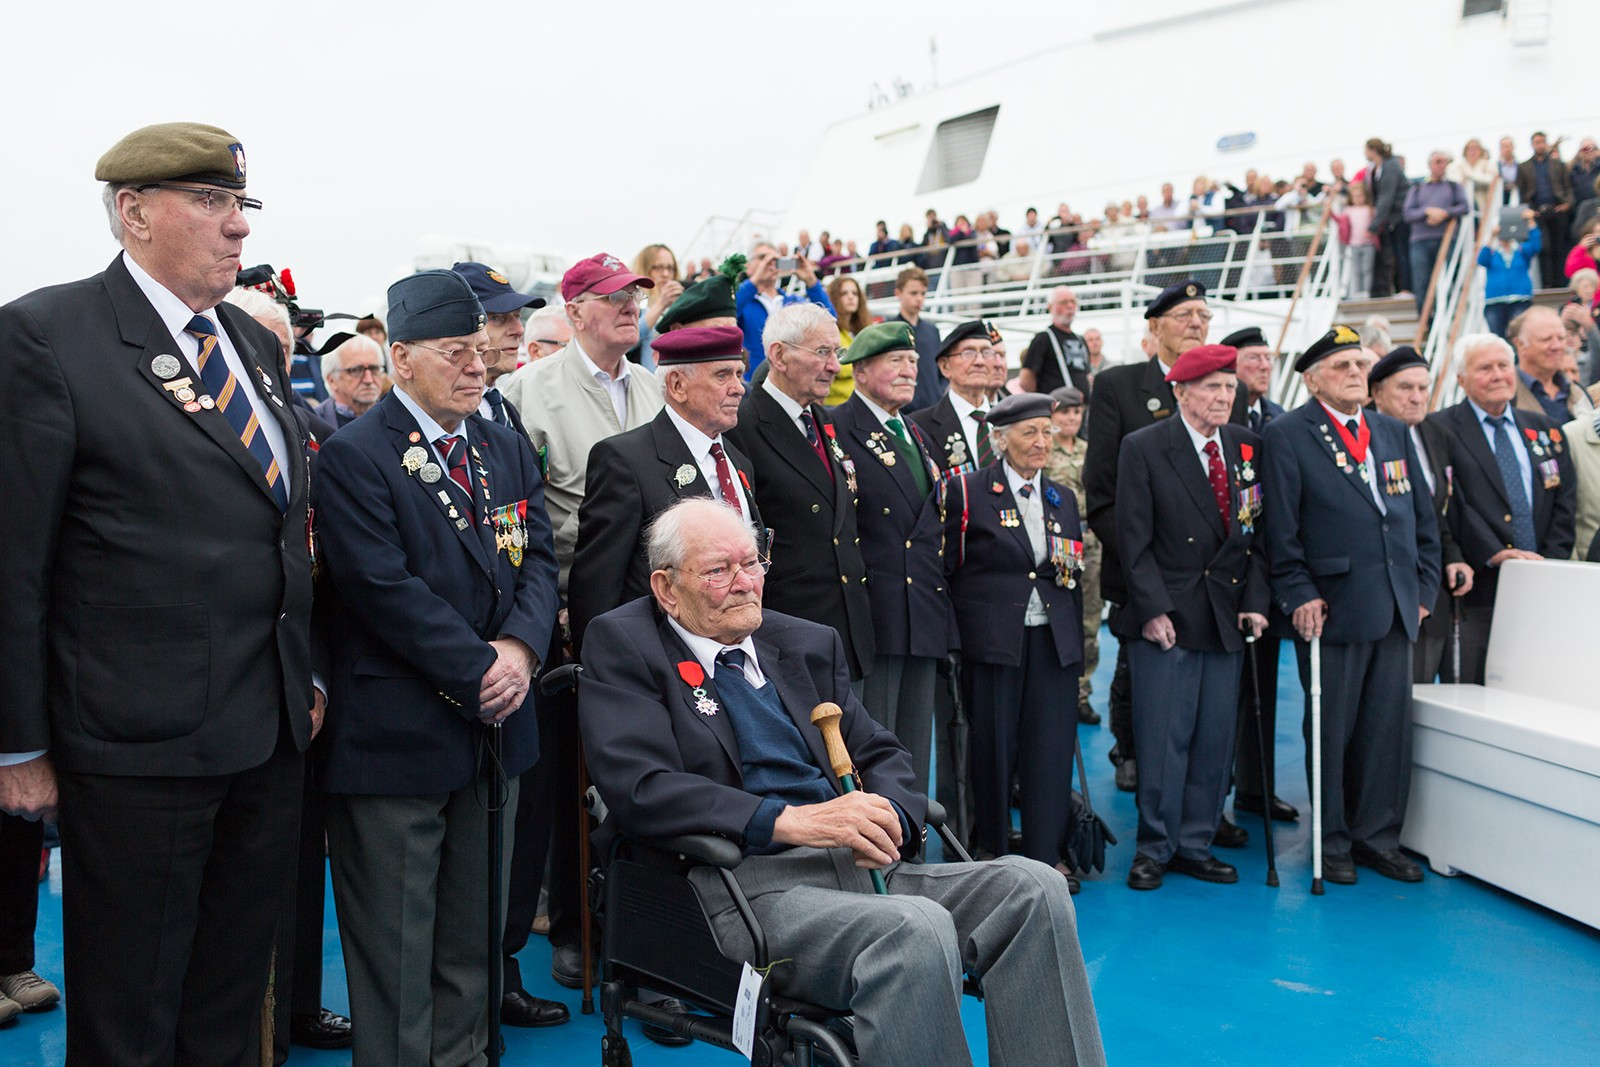 D-Day Veterans travel to Normandy 2014